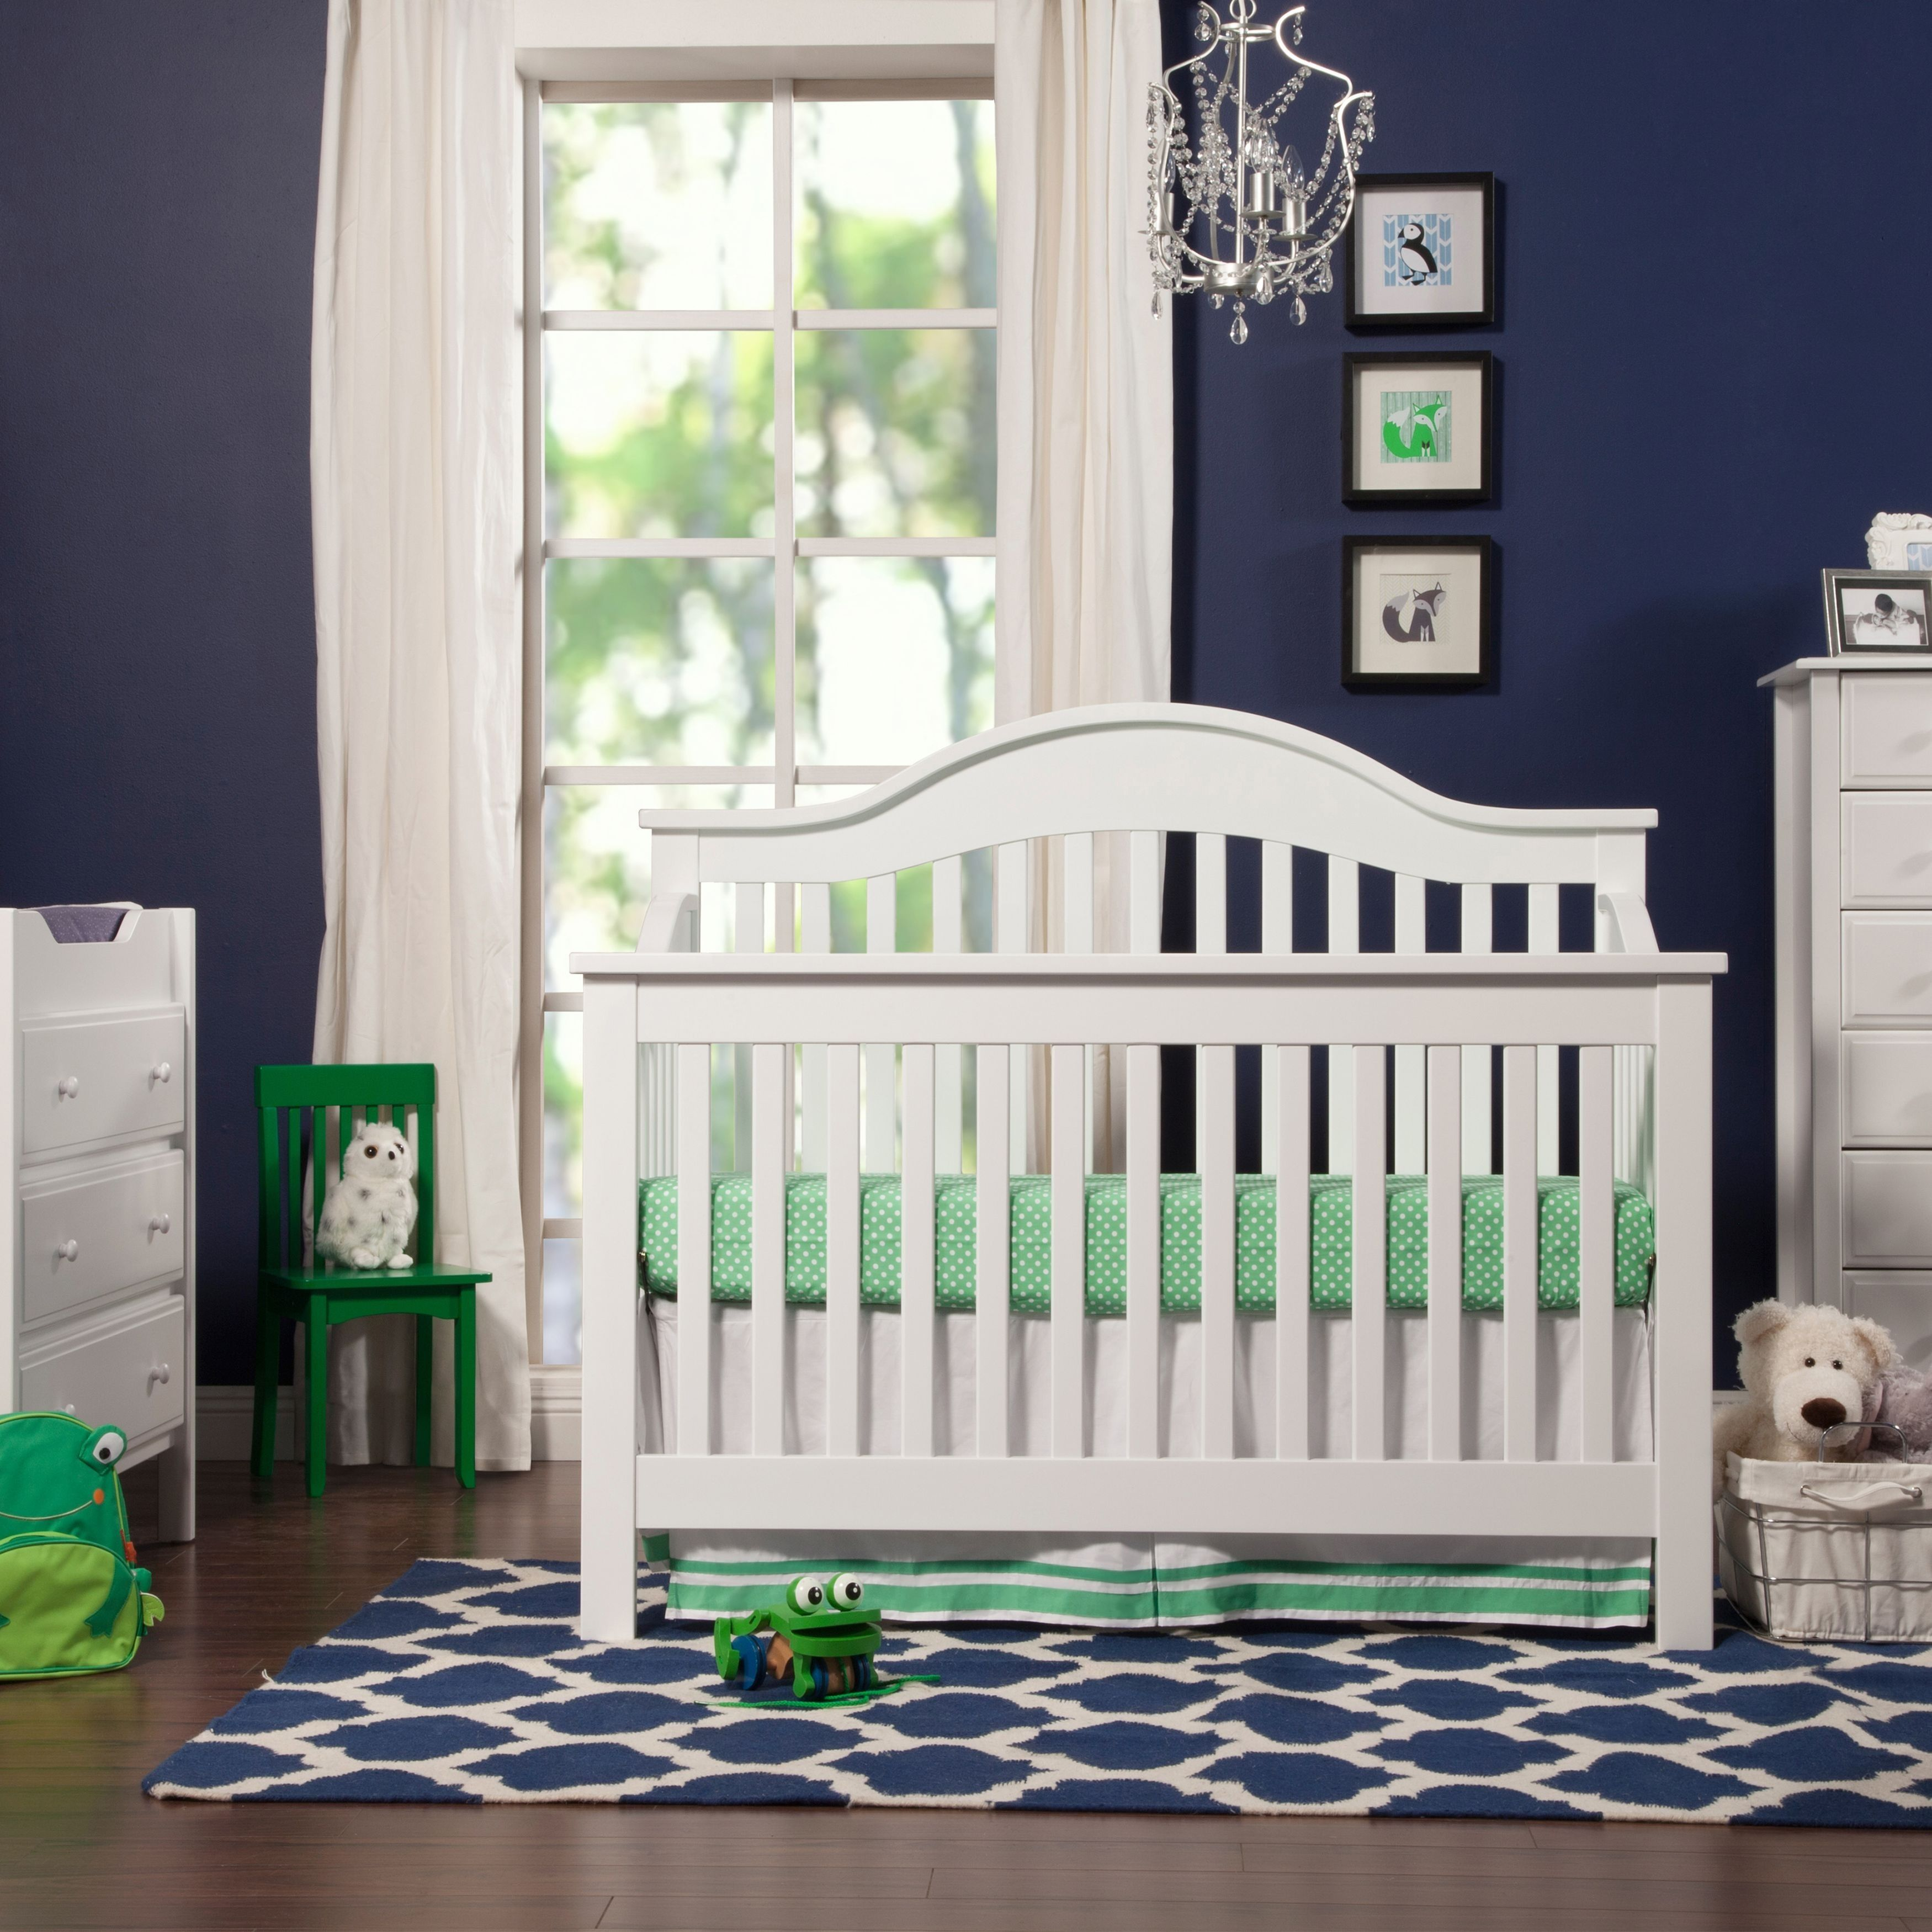 Furnish Your Childs Room In Style With This Beautiful Davinci